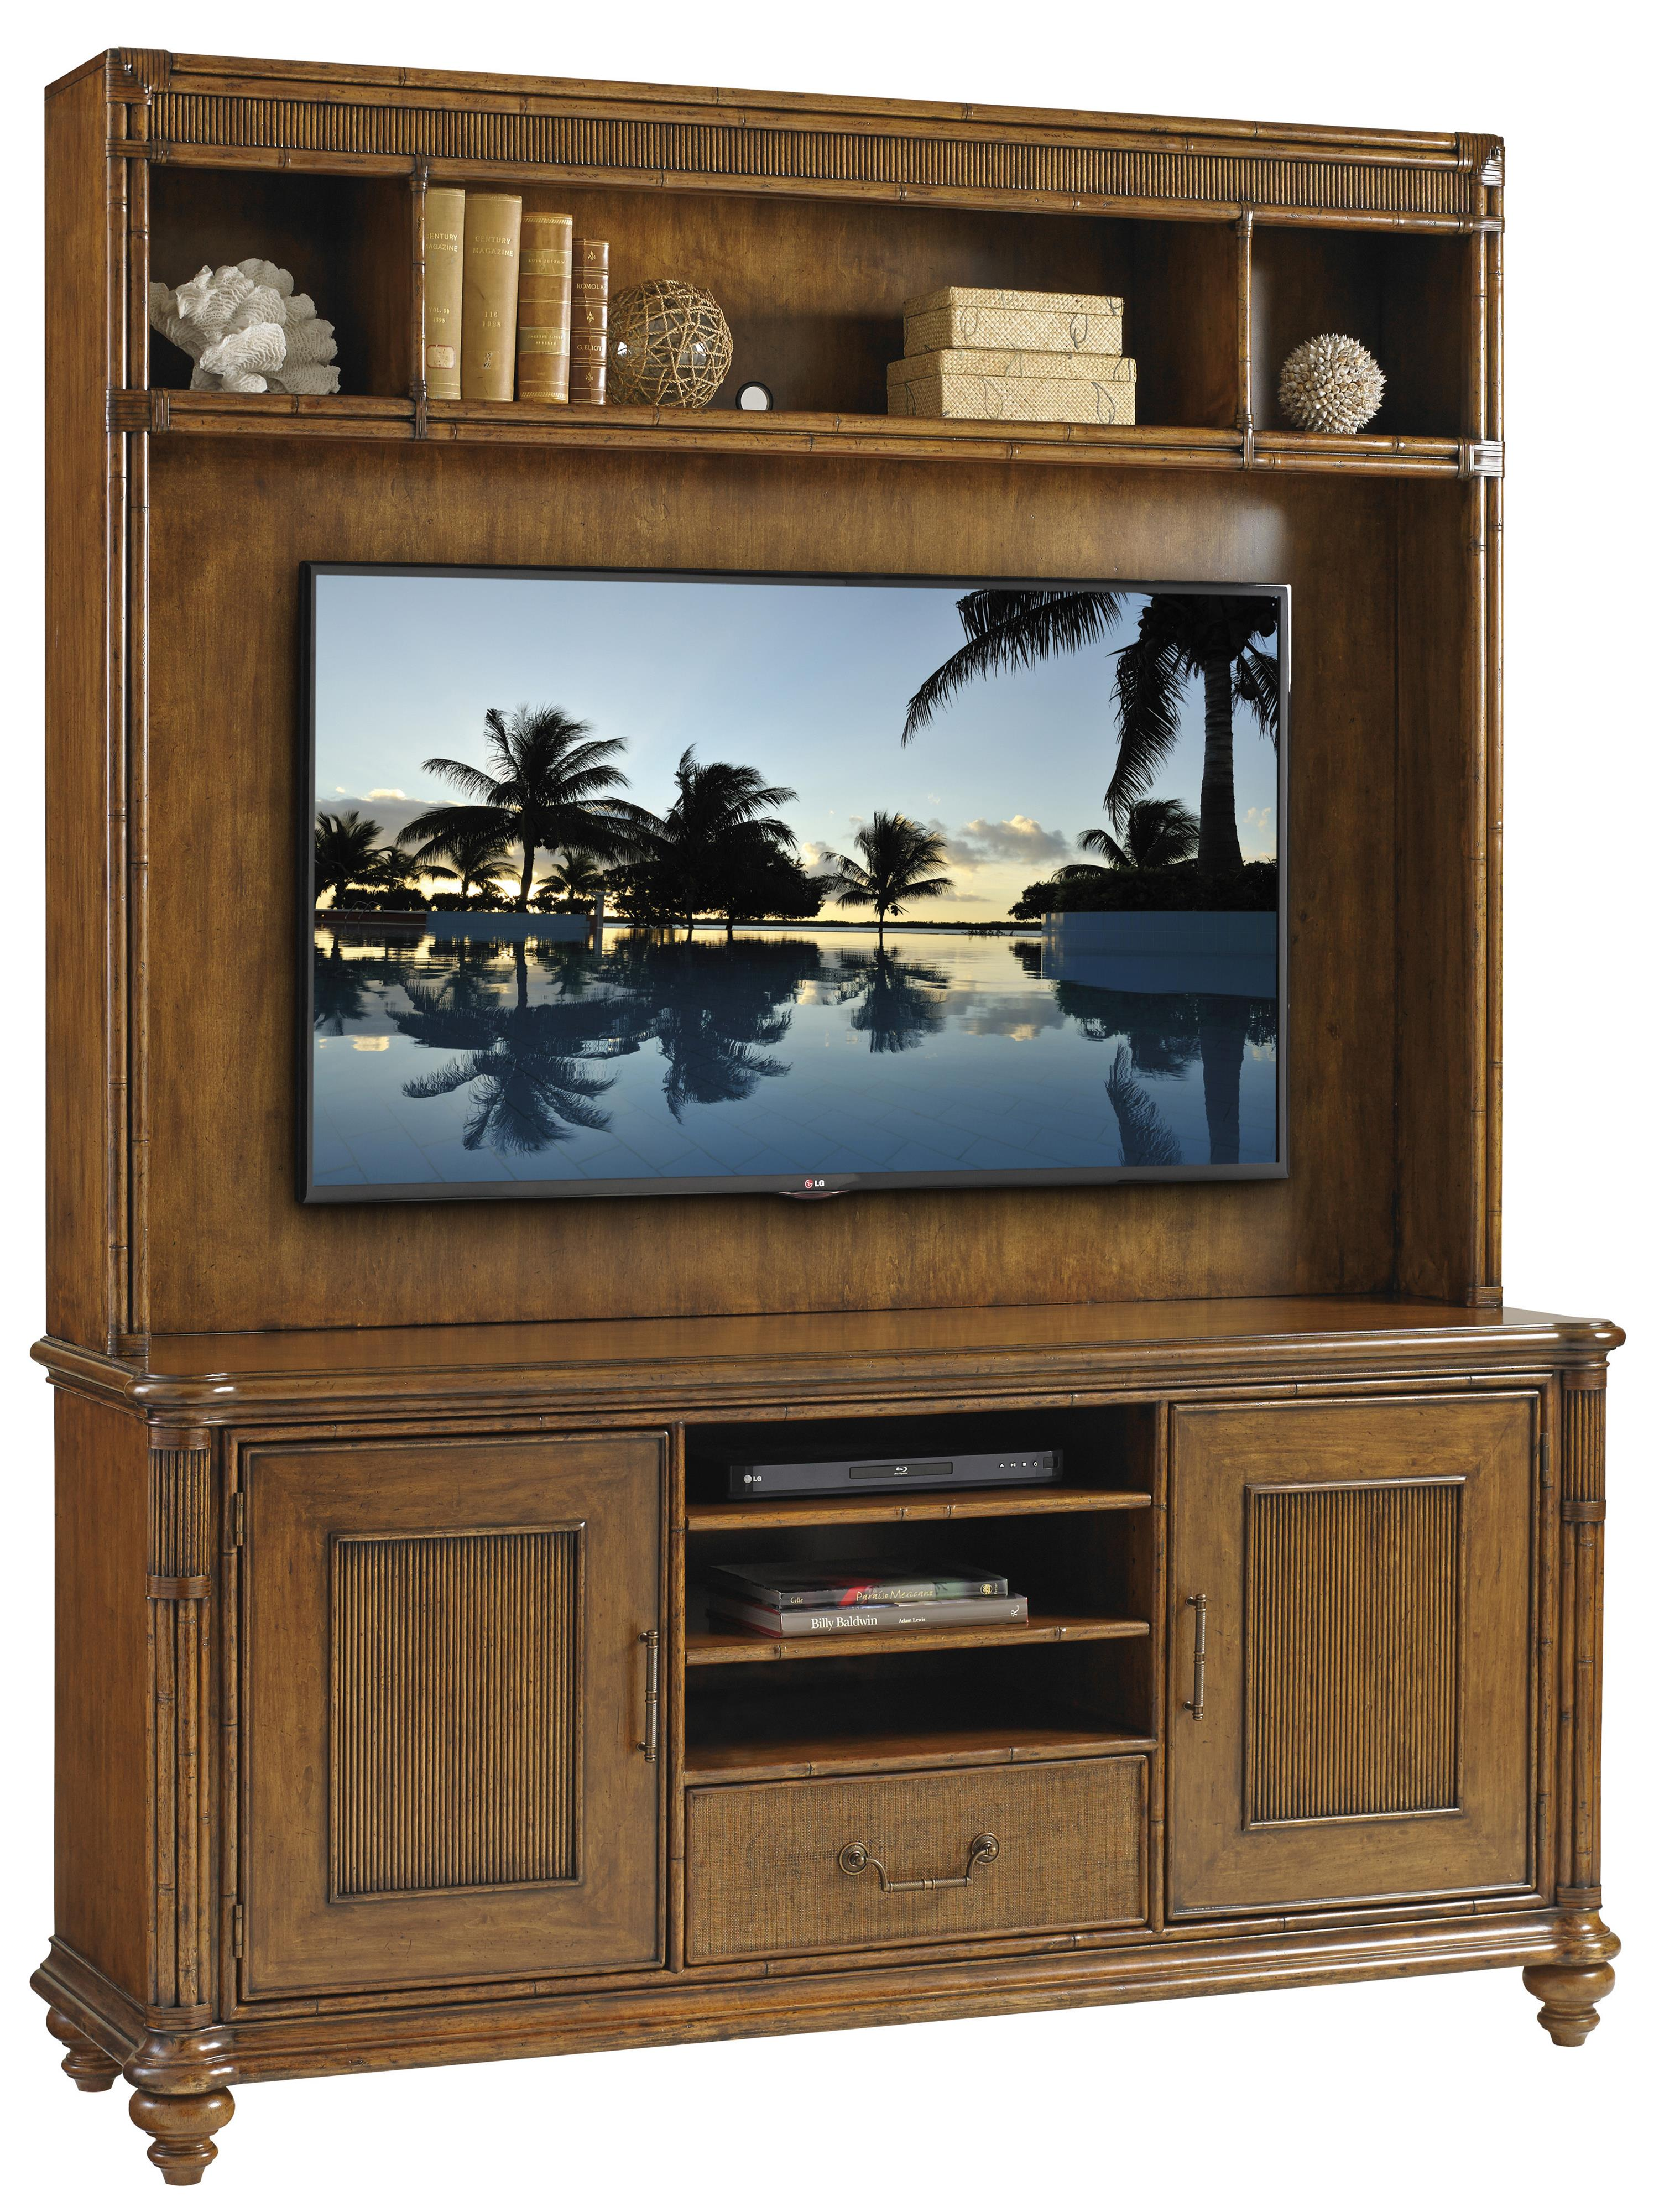 Tommy Bahama Home Bali Hai Pelican Cay Media Console and Hutch - Item Number: 593-908+918